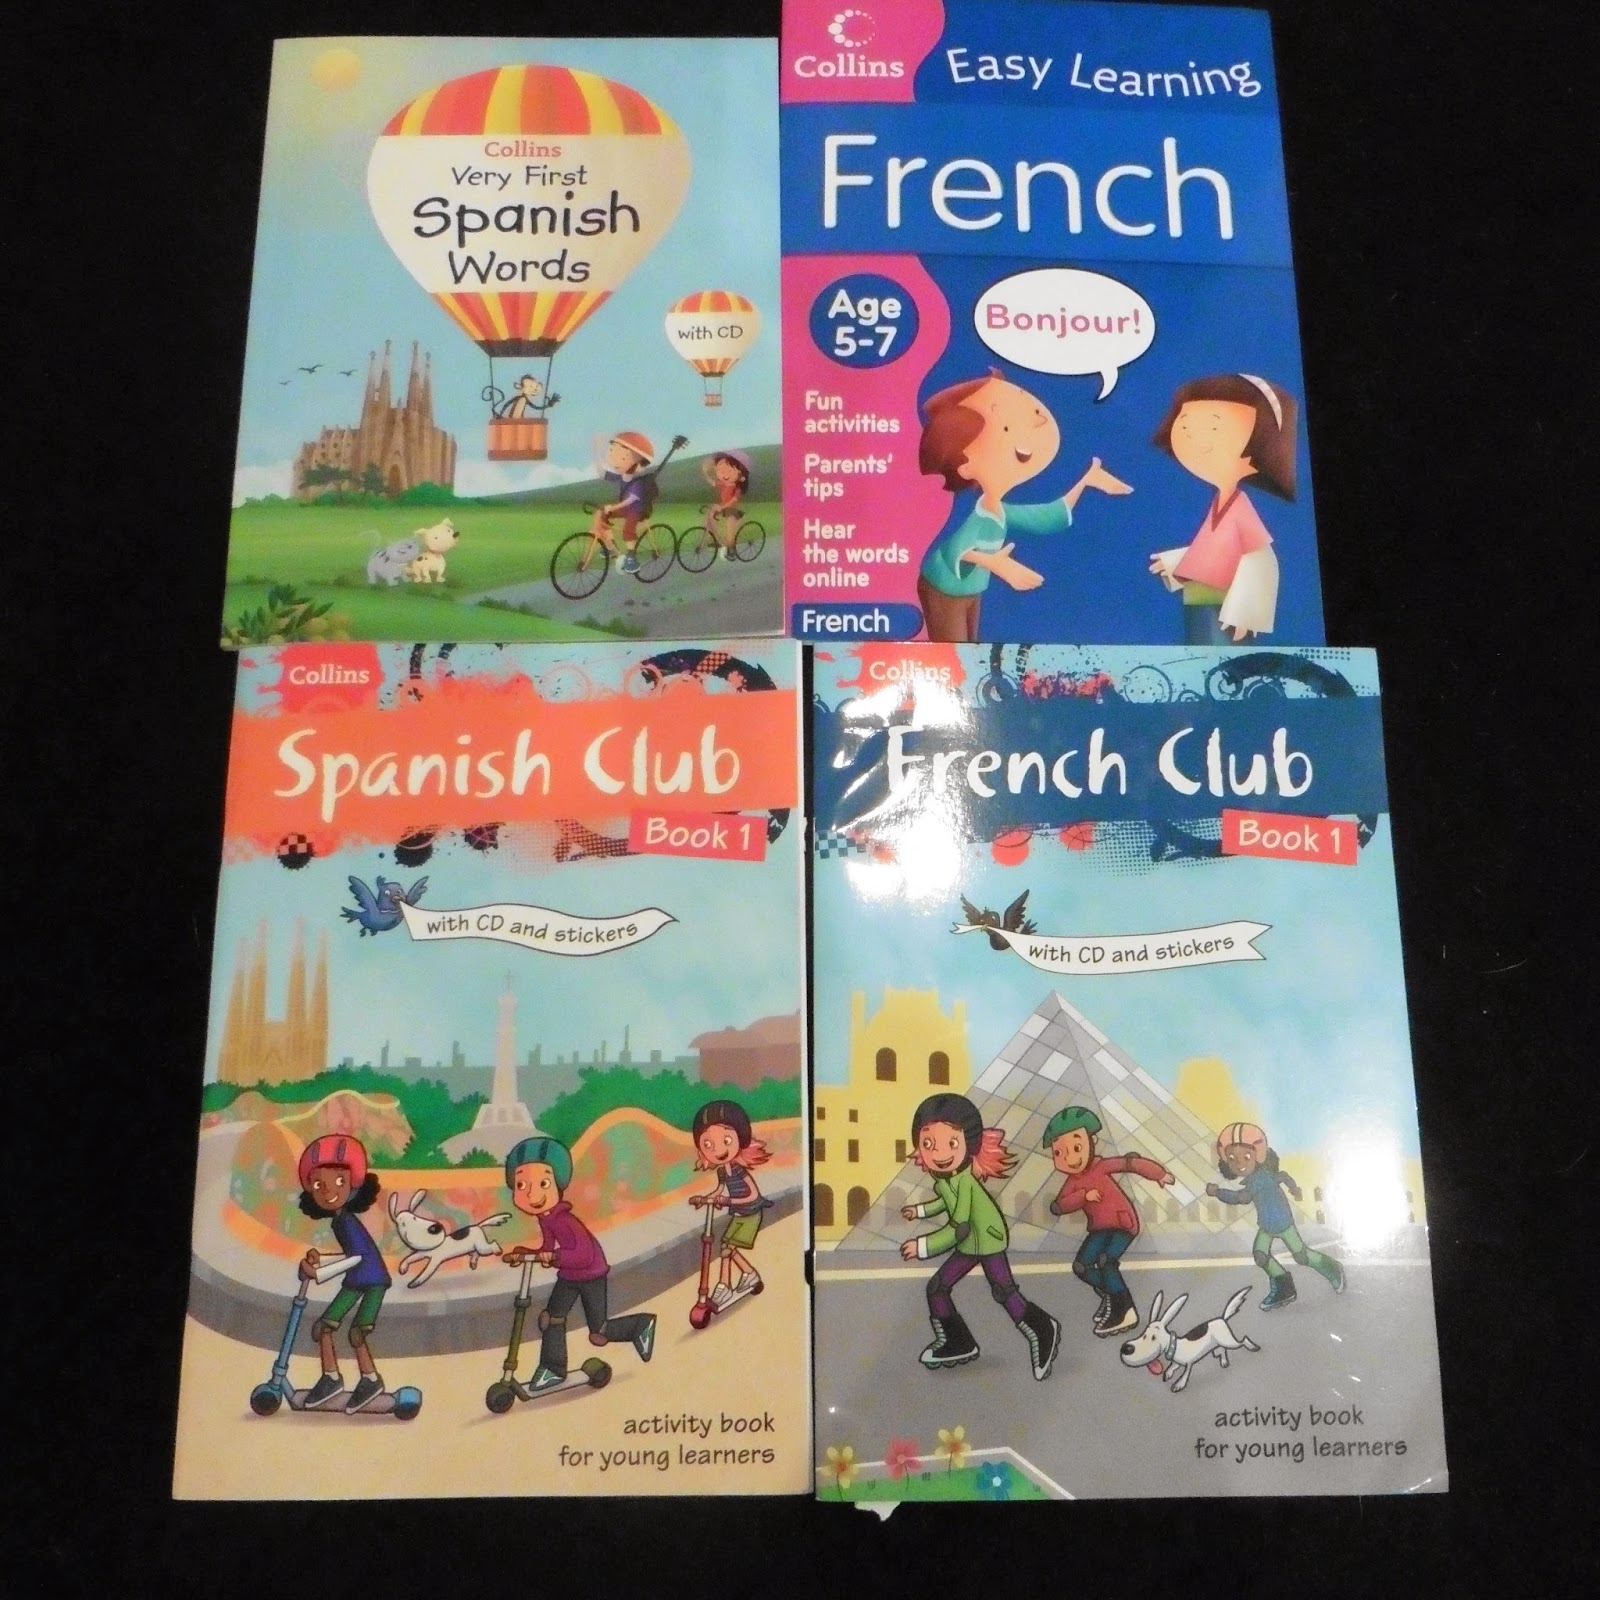 French and Spanish books